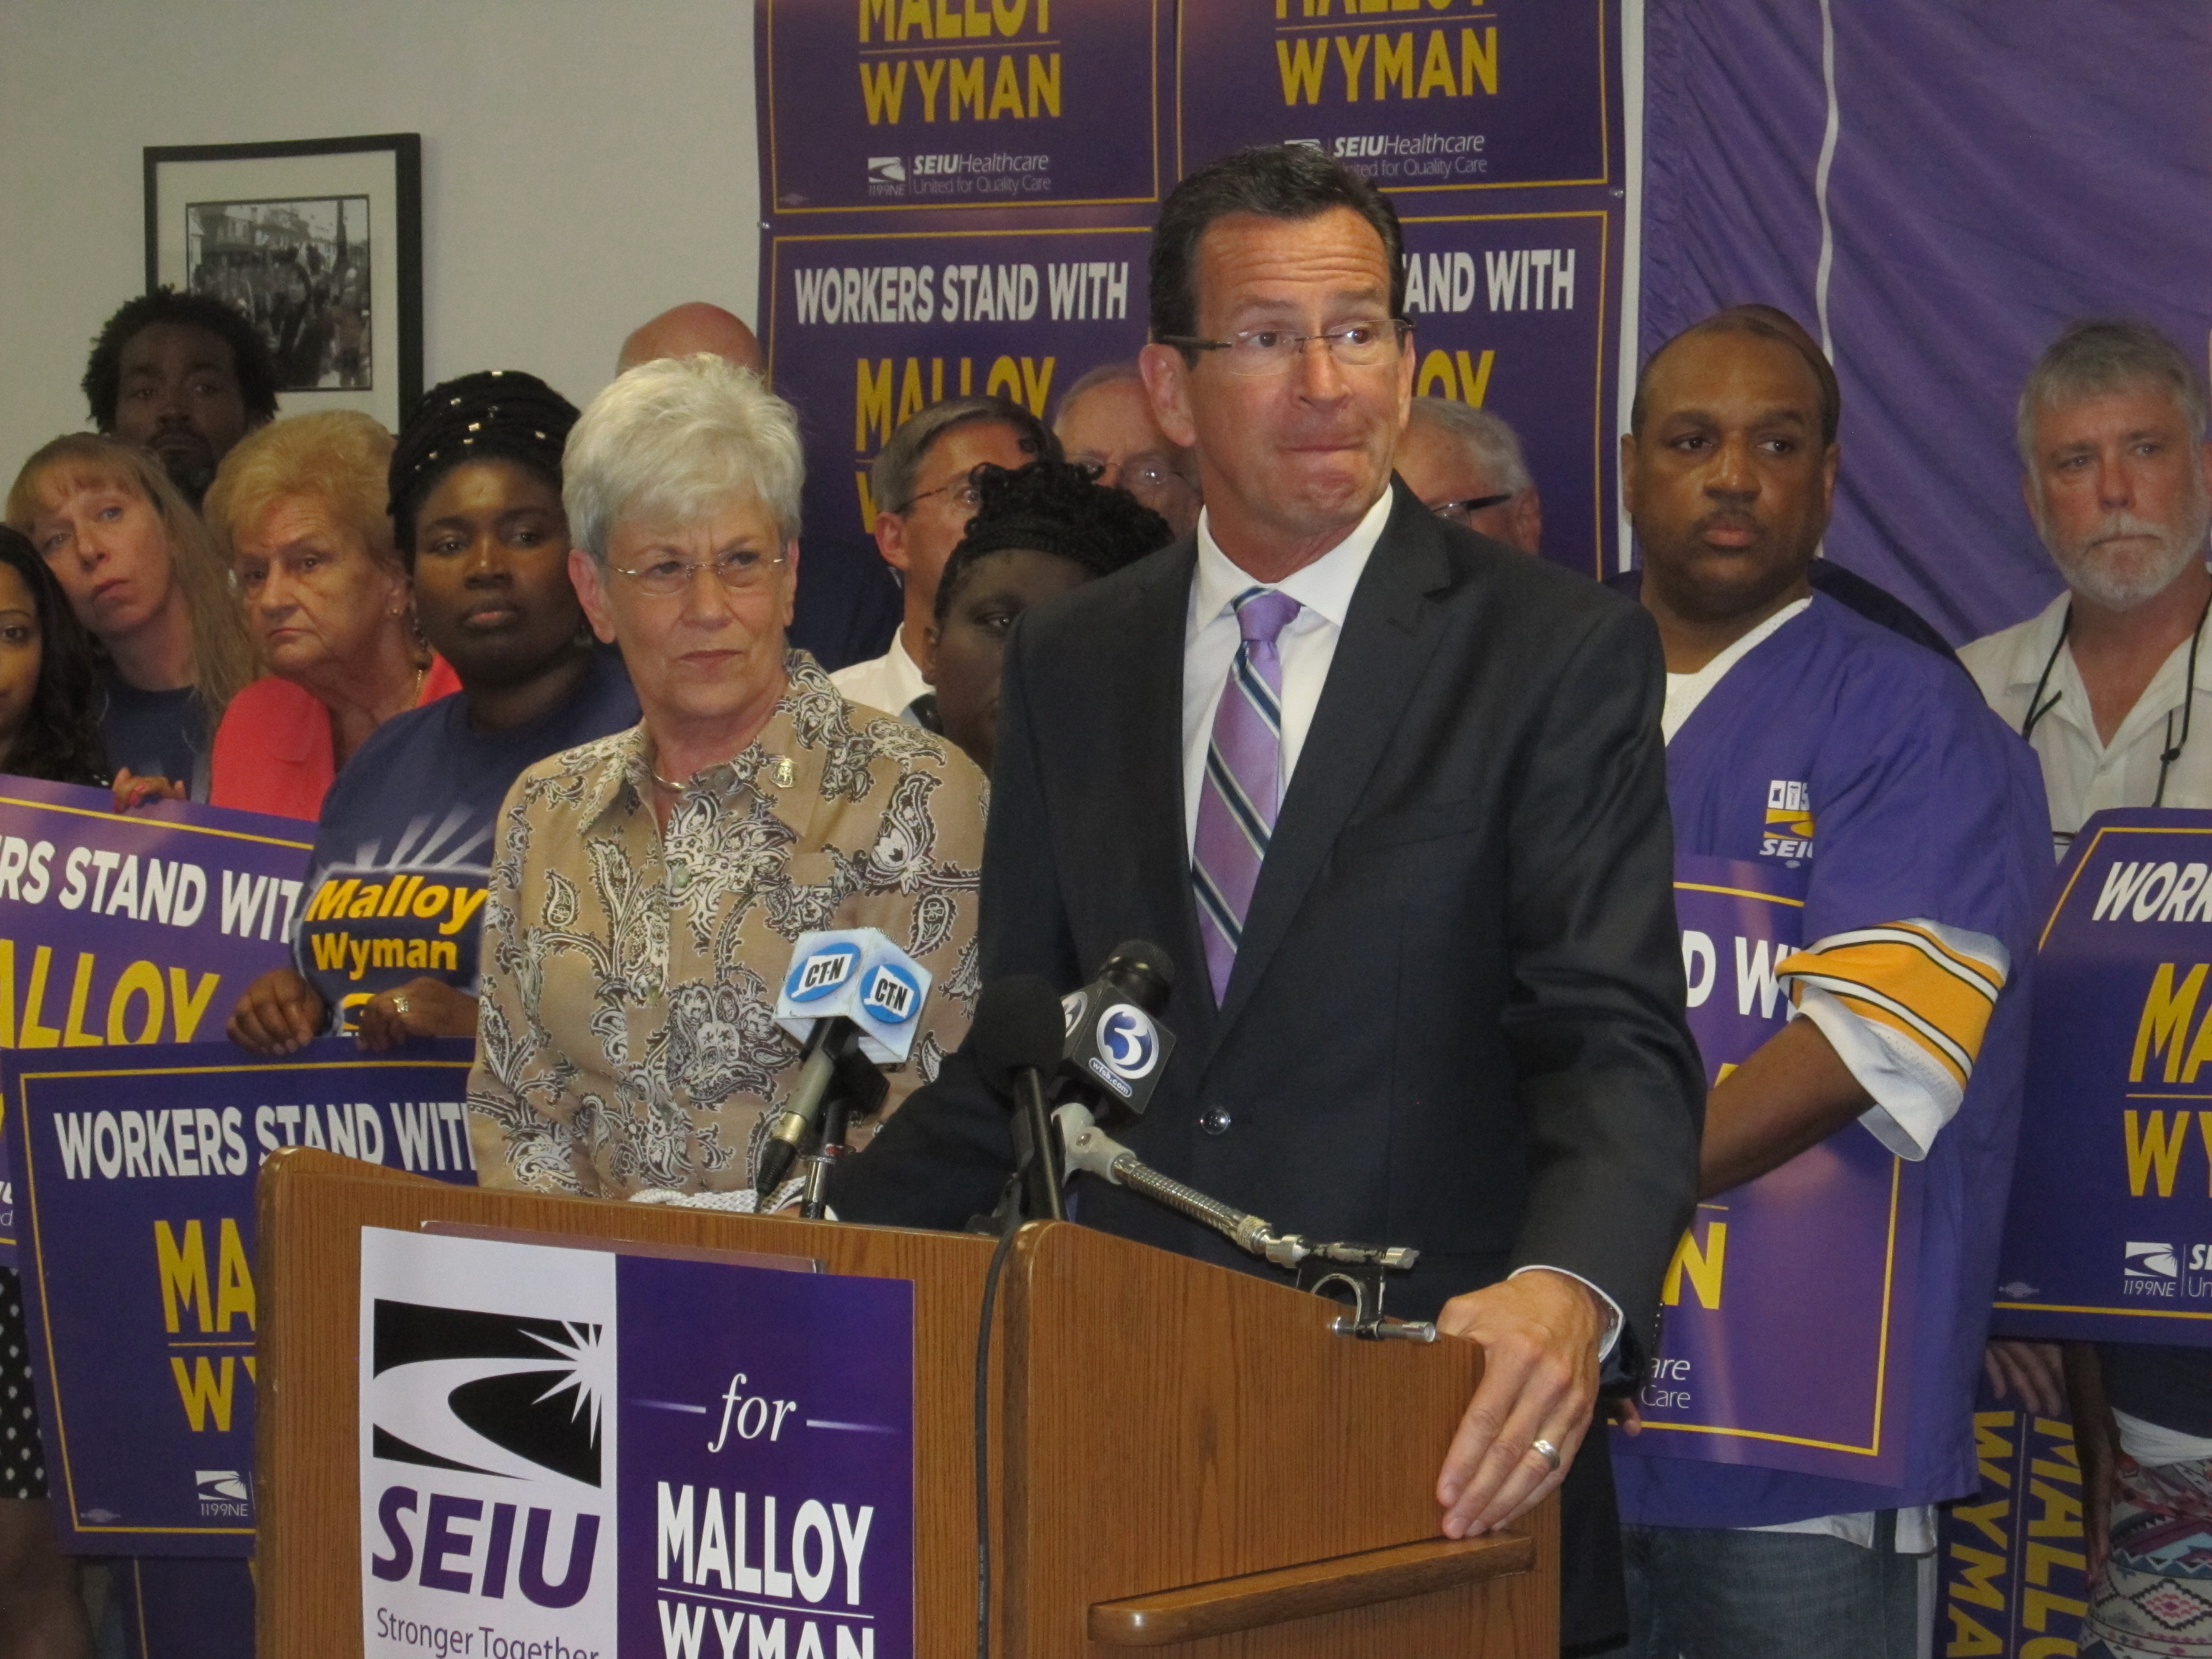 Malloy delivers for SEIU, and the union returns the favor